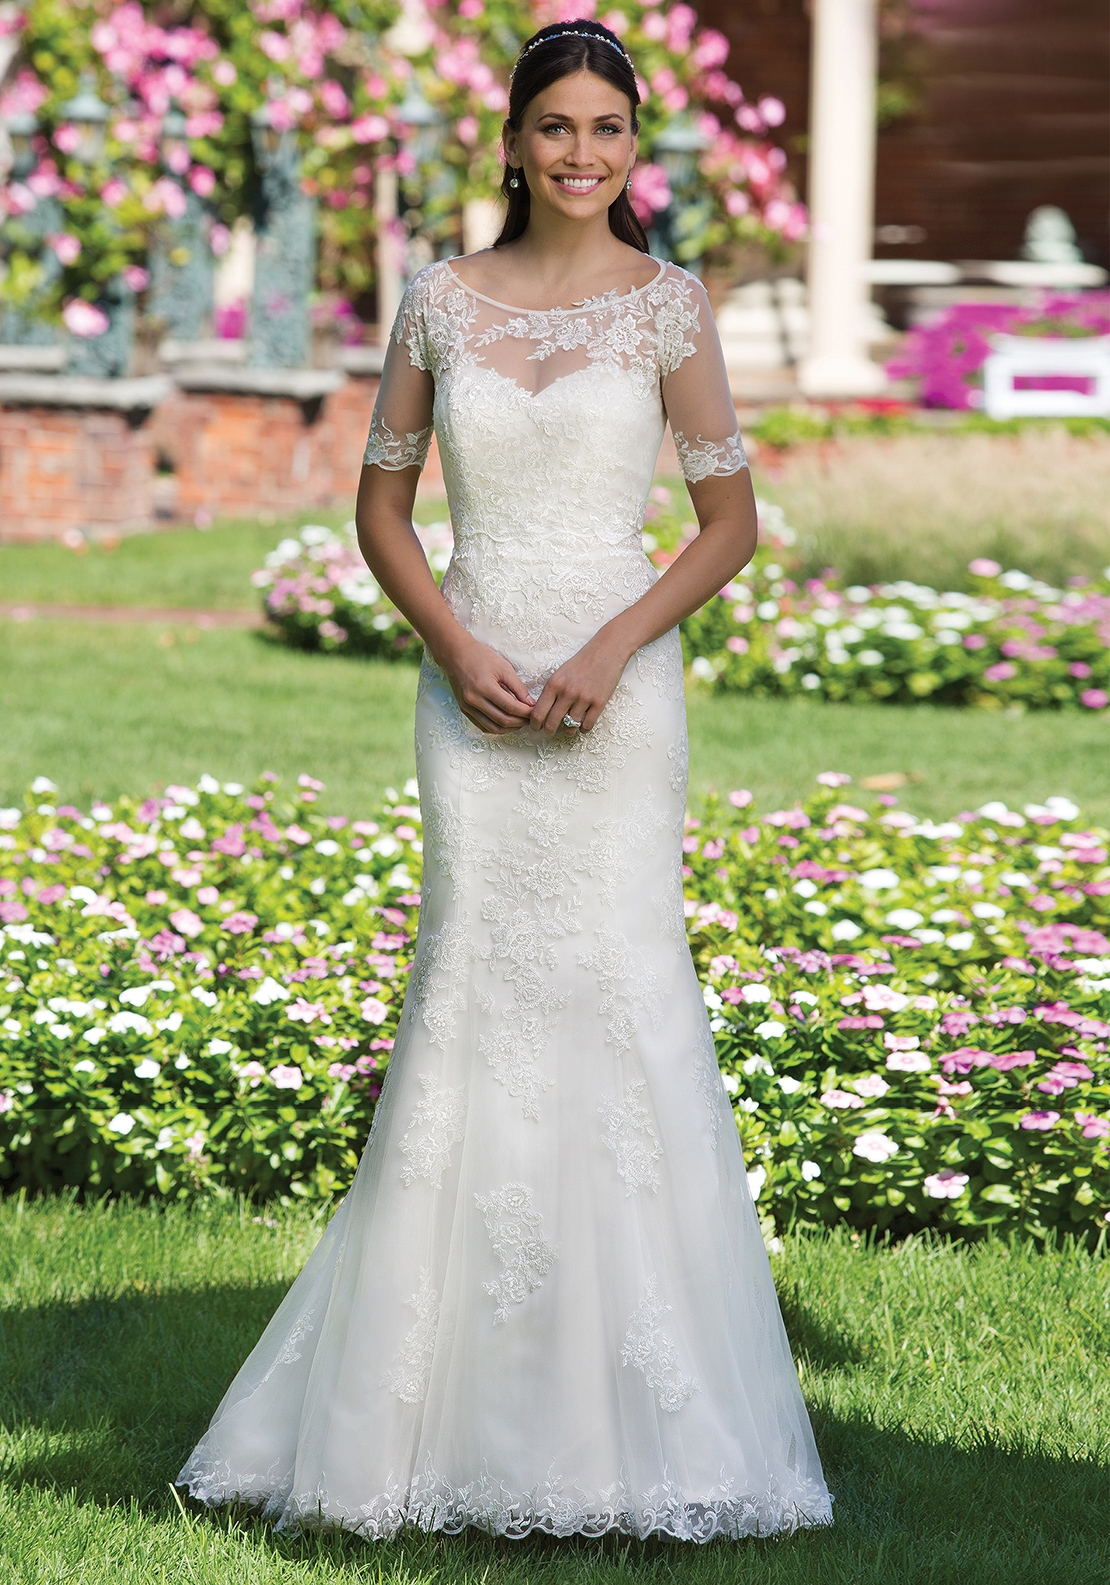 Sincerity 3911 Wedding Dress UK Size 12, Ivory